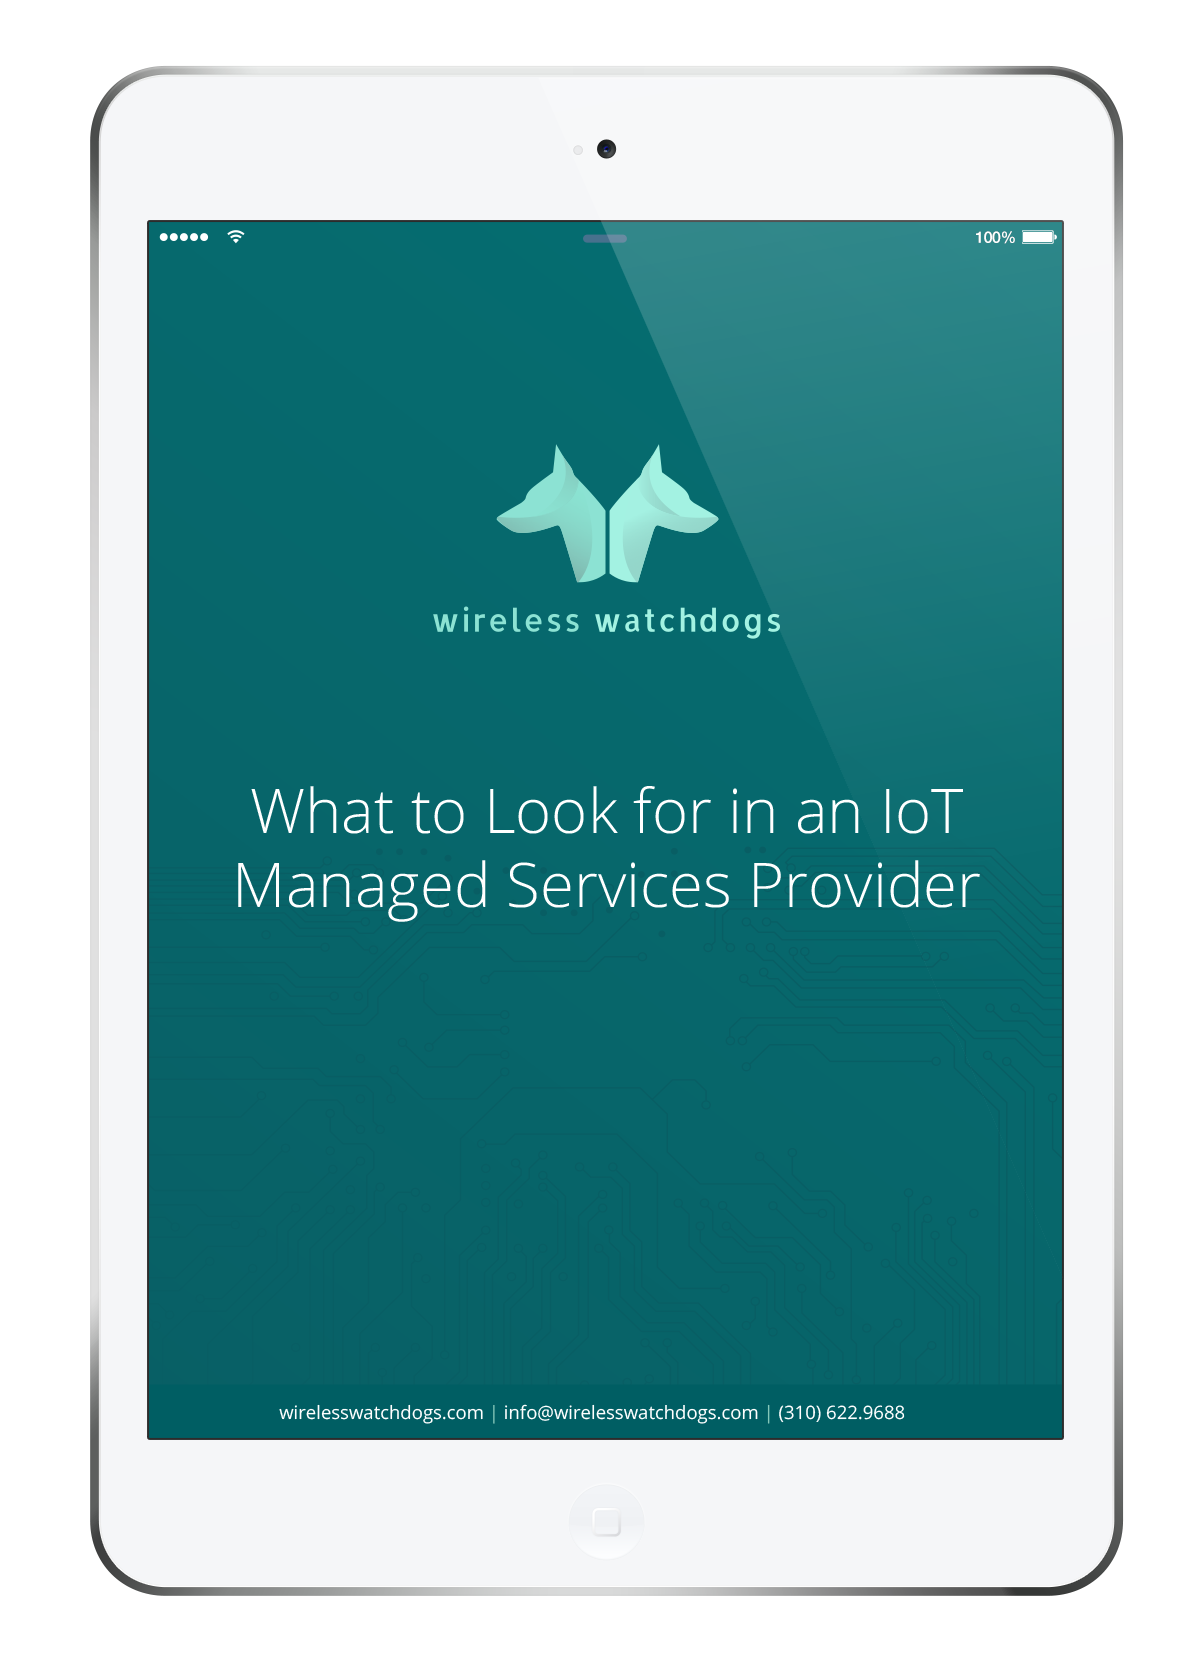 What to Look for in IoT Managed Services Provider